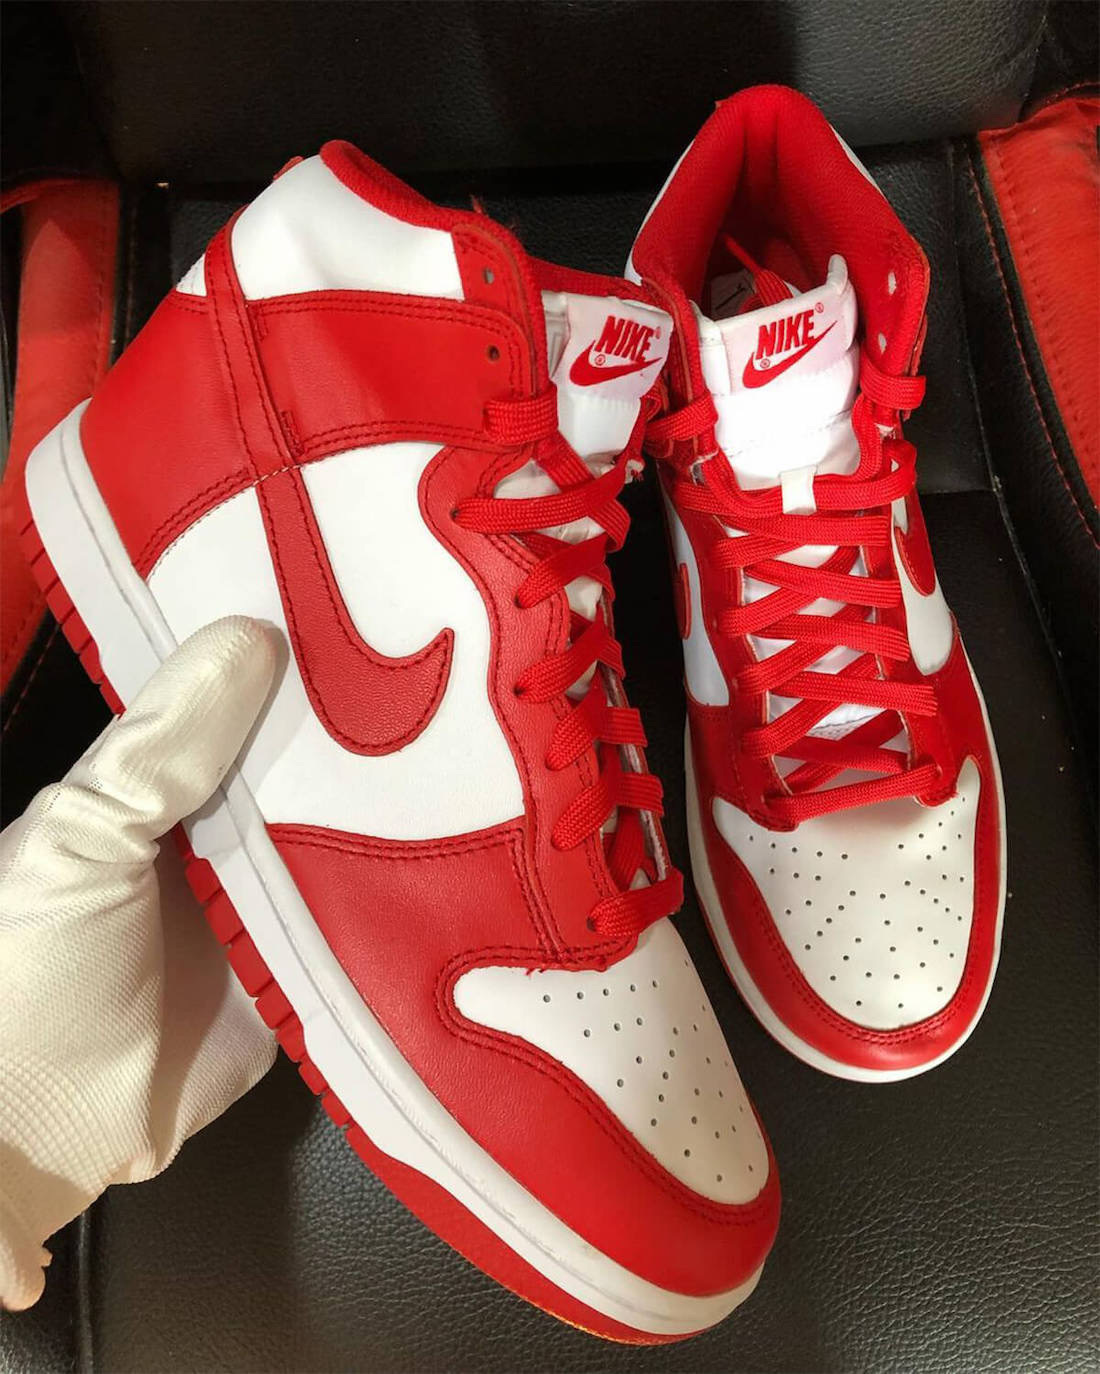 nike-dunk-high-st-johns-university-red-dd1399-106-release-2021